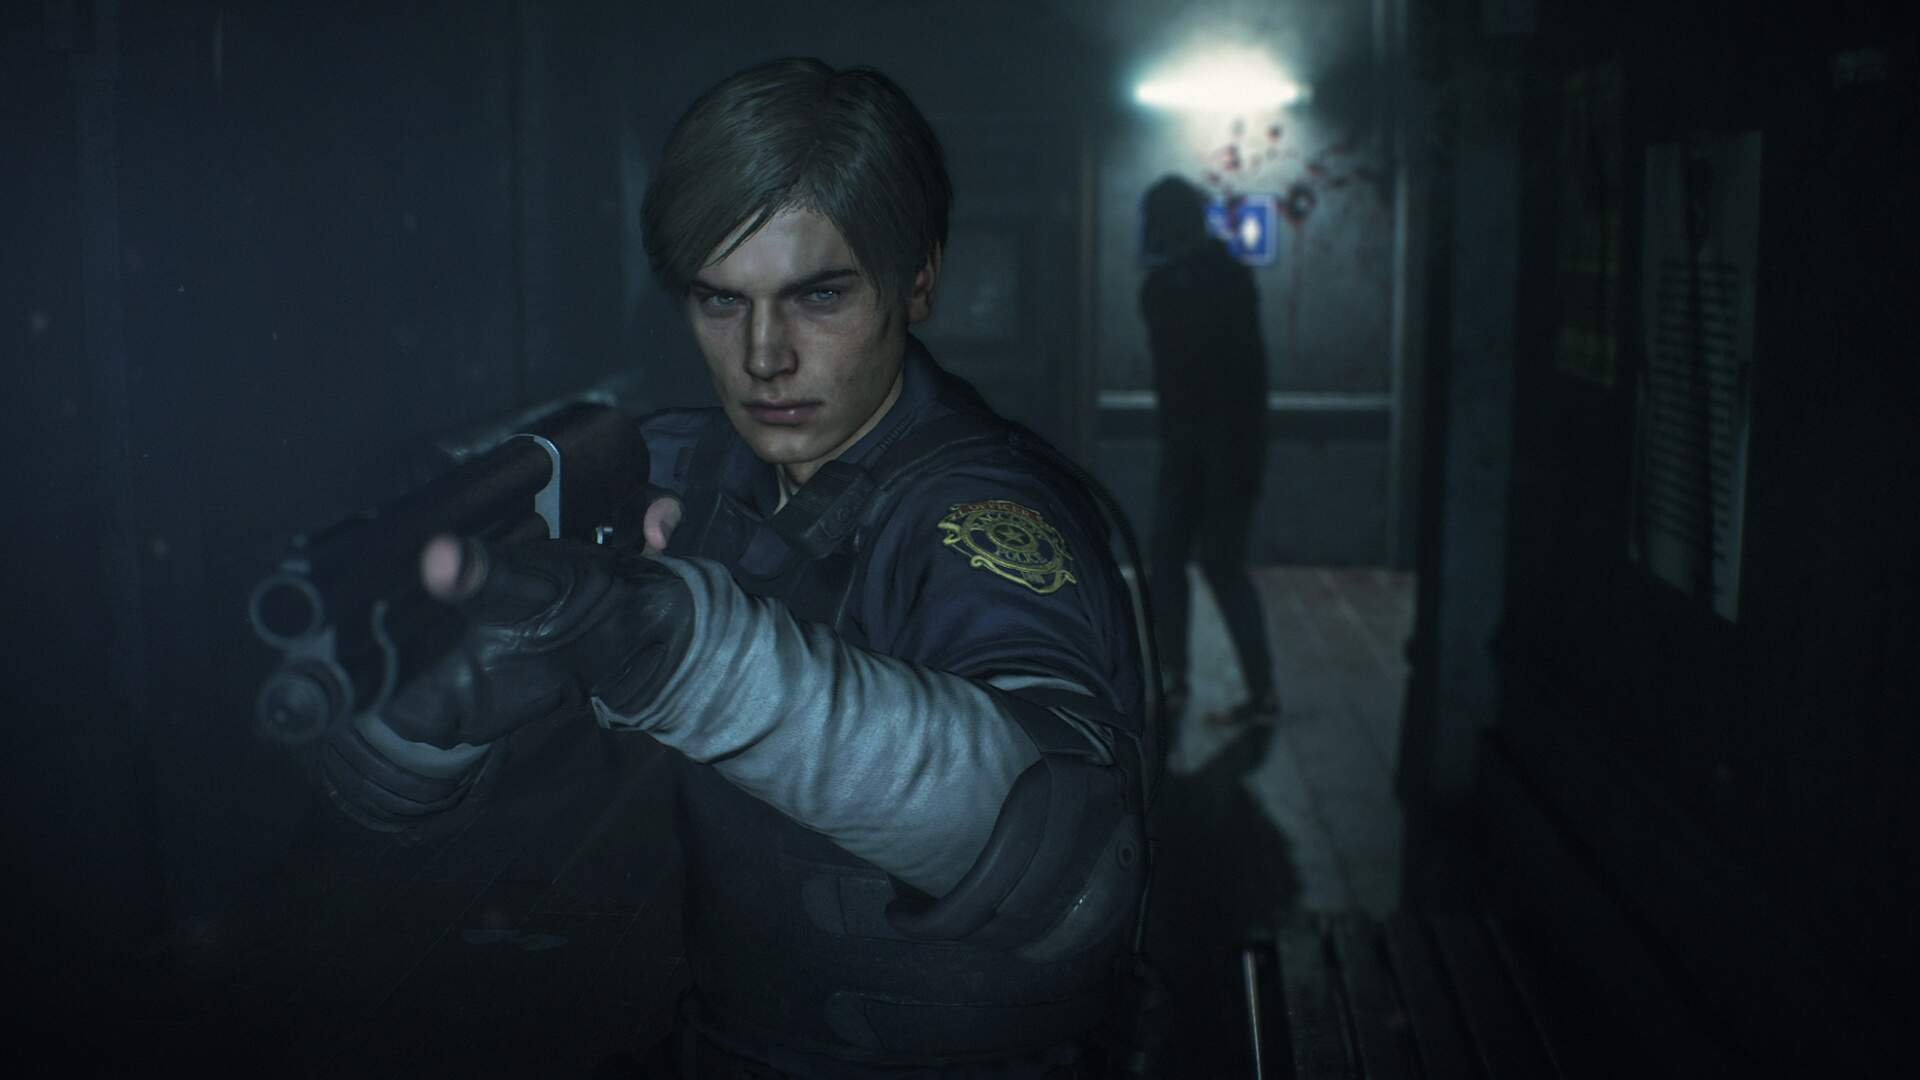 Meet the Resident Evil 2 Speedrunner Devoted to Beating Games Without Getting Hit